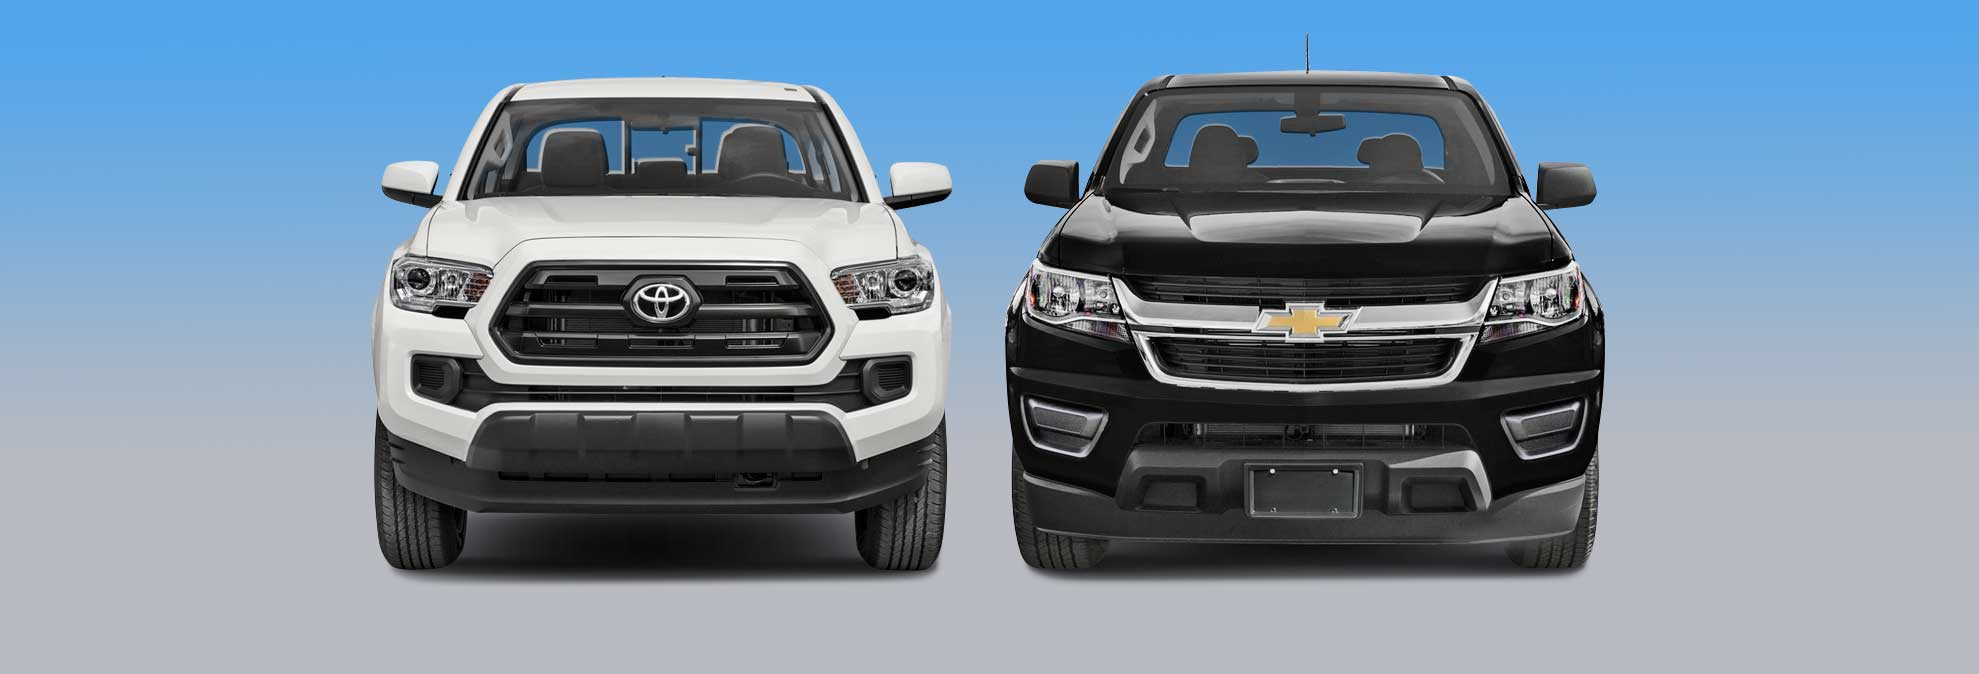 Toyota Tacoma: Which Should You Buy? - Consumer Reports